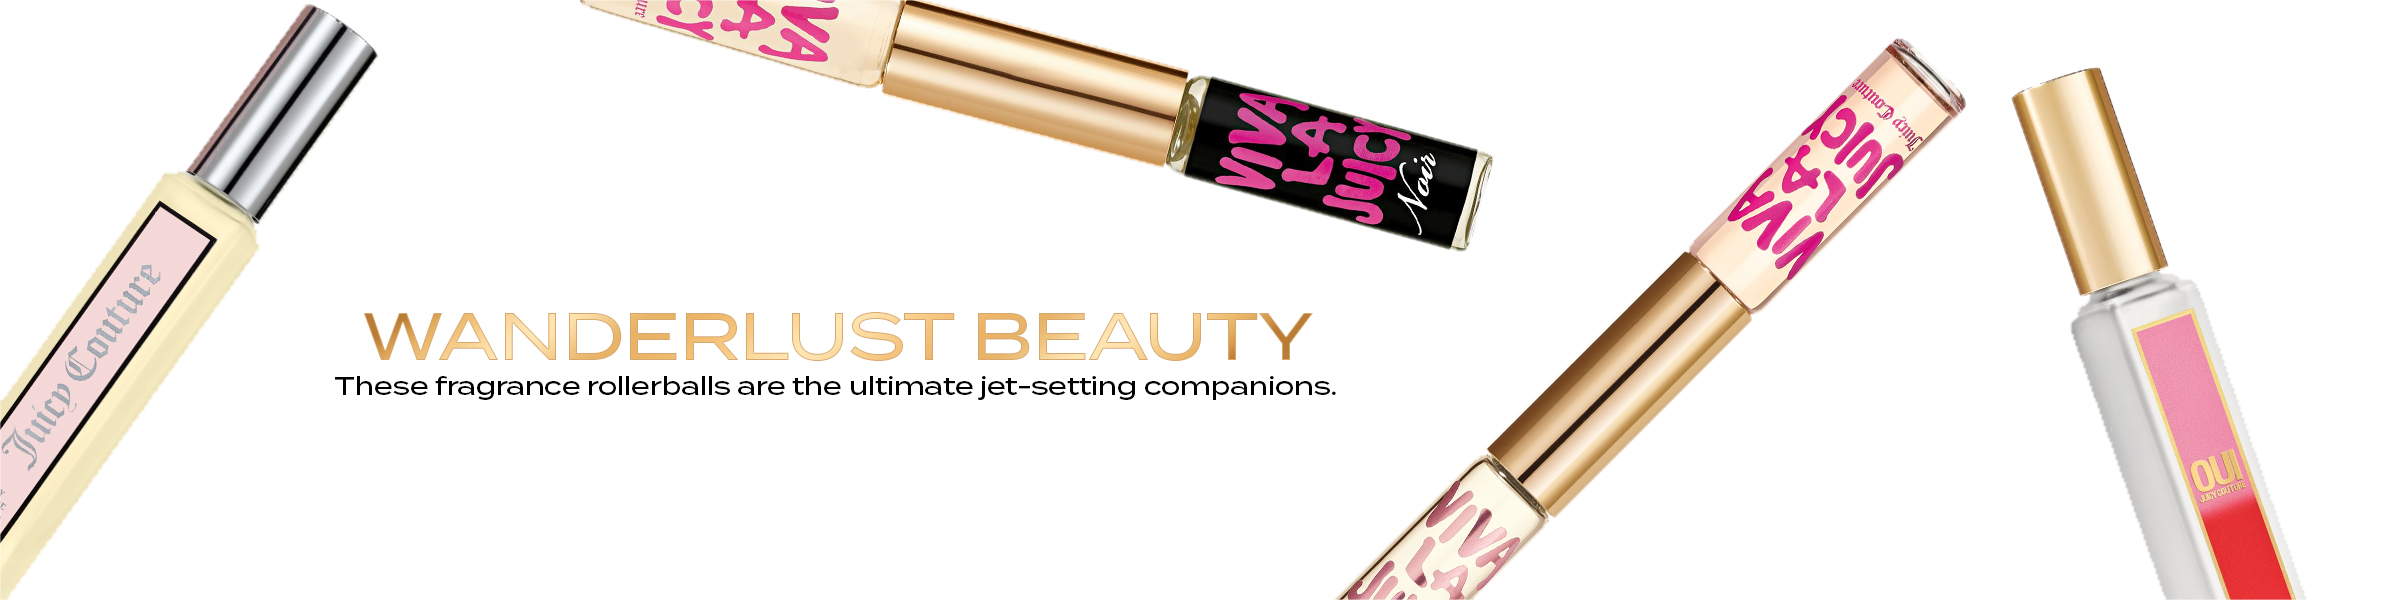 Juicy Couture Makeup